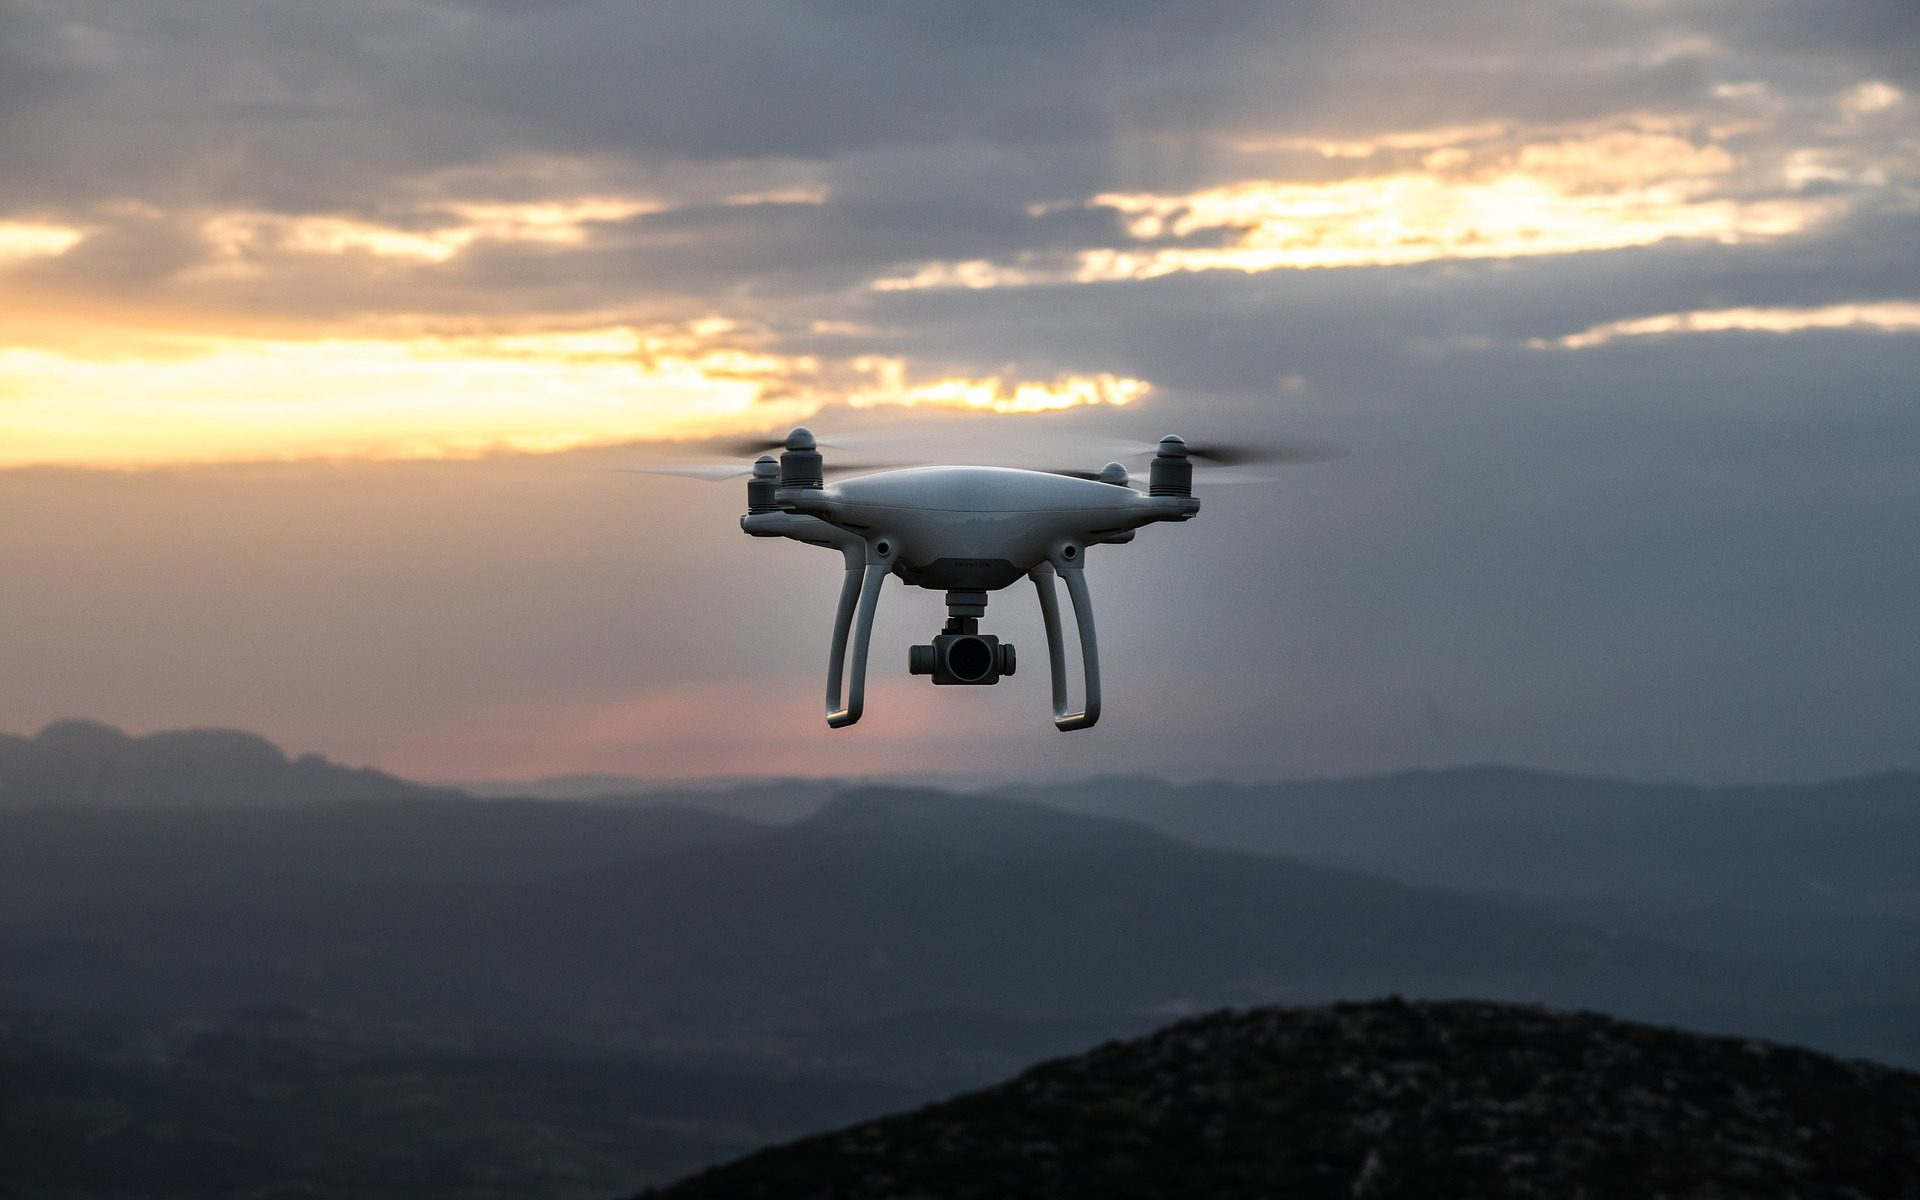 FAA Certified Drone Aerial UAS UAV Unmanned Aerial System Vehicle Maryland